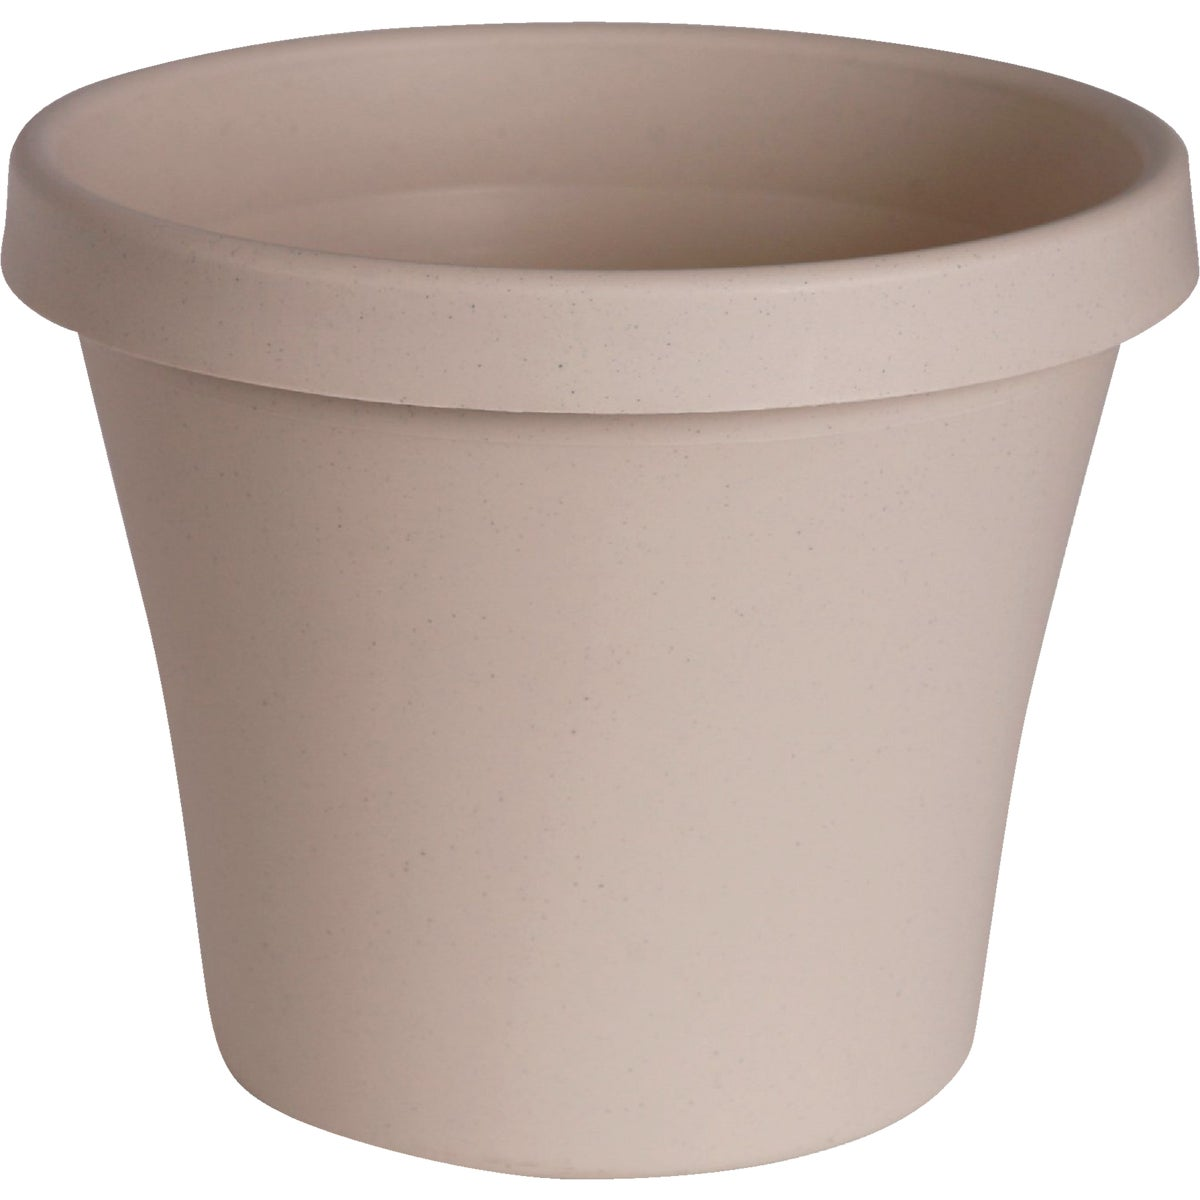 "14"" PEPRSTONE POLY POT - 50614 by Fiskars Brands Inc"